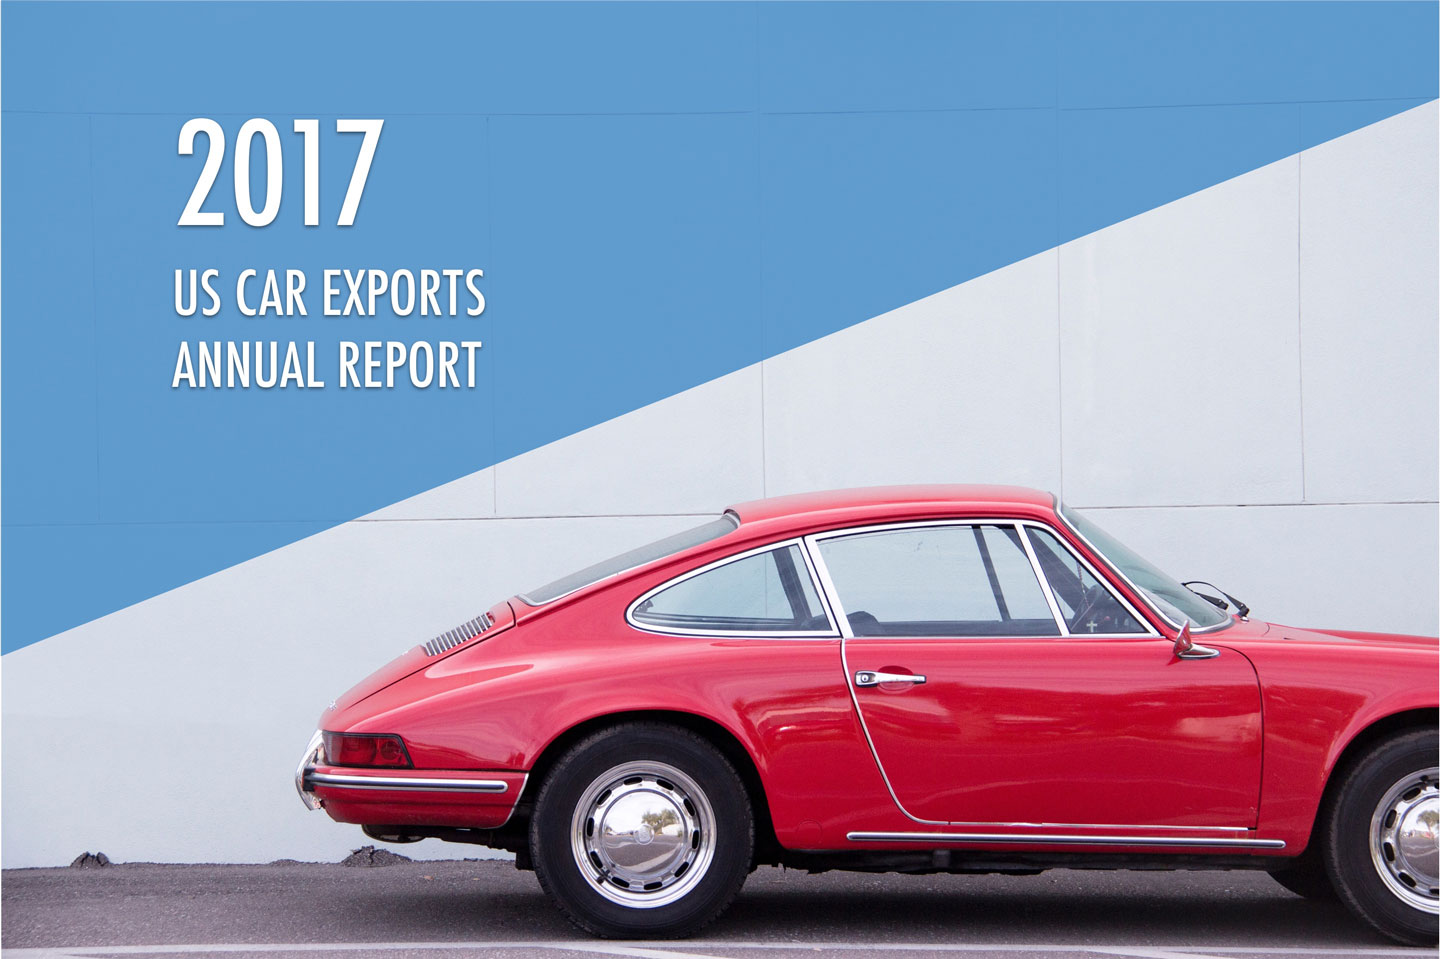 US Car Exports Grow By 25% in 2017